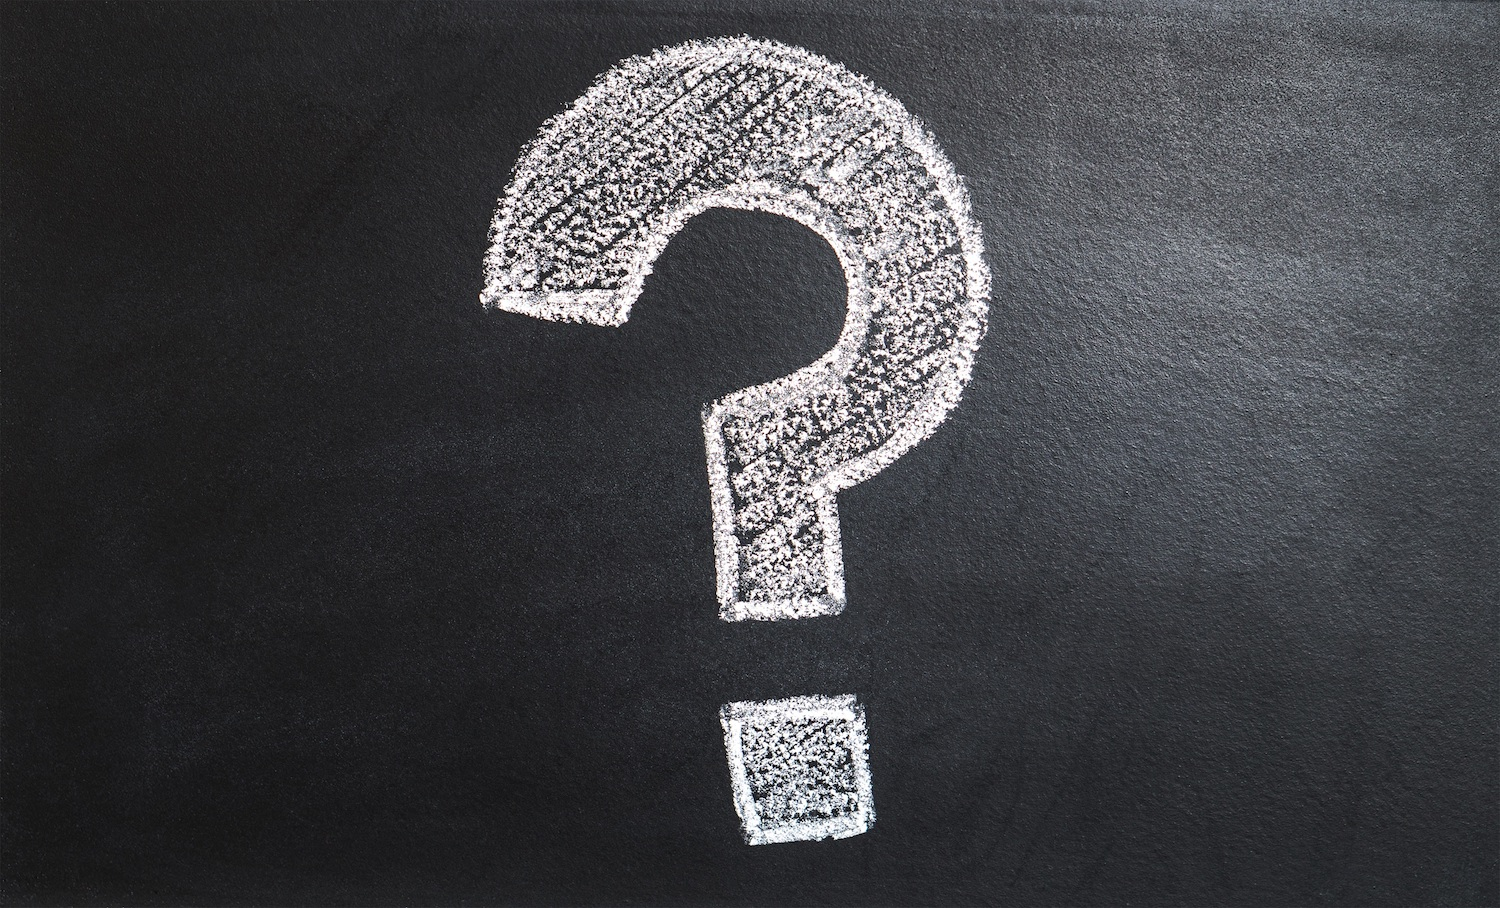 Picture of a question mark sign